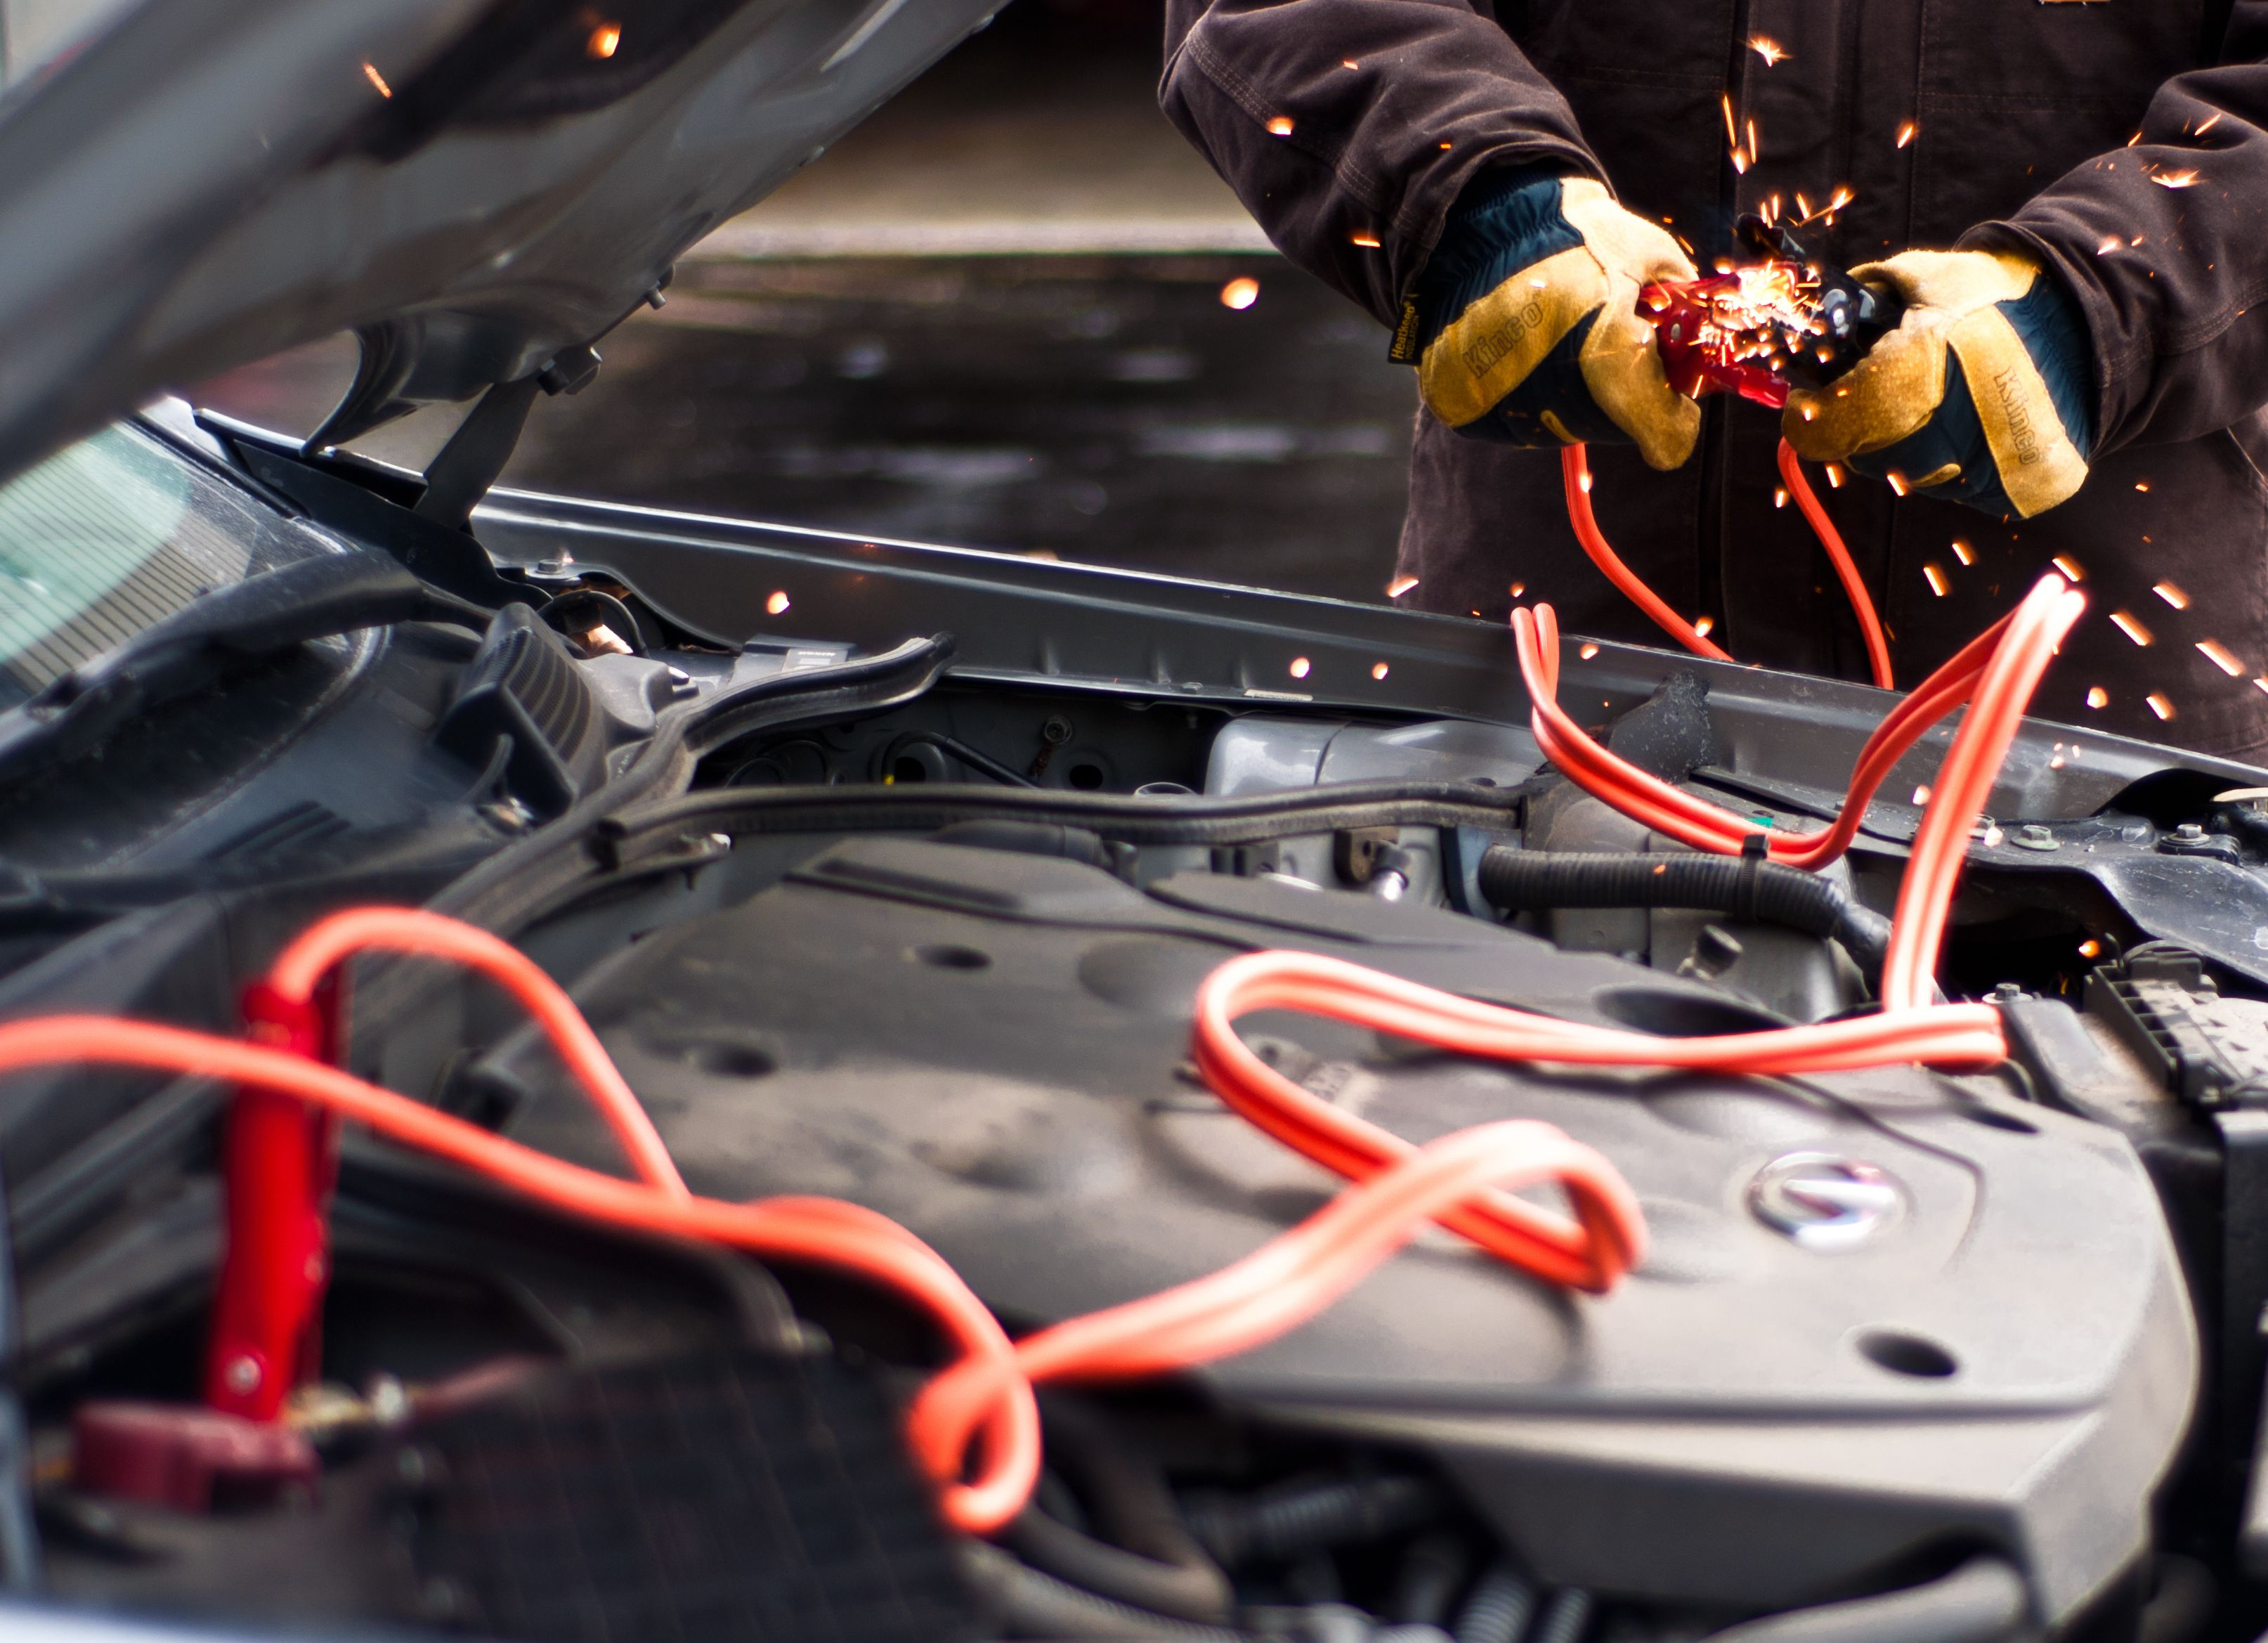 What Happens If You Hook Up Jumper Cables Wrong - optiondedal